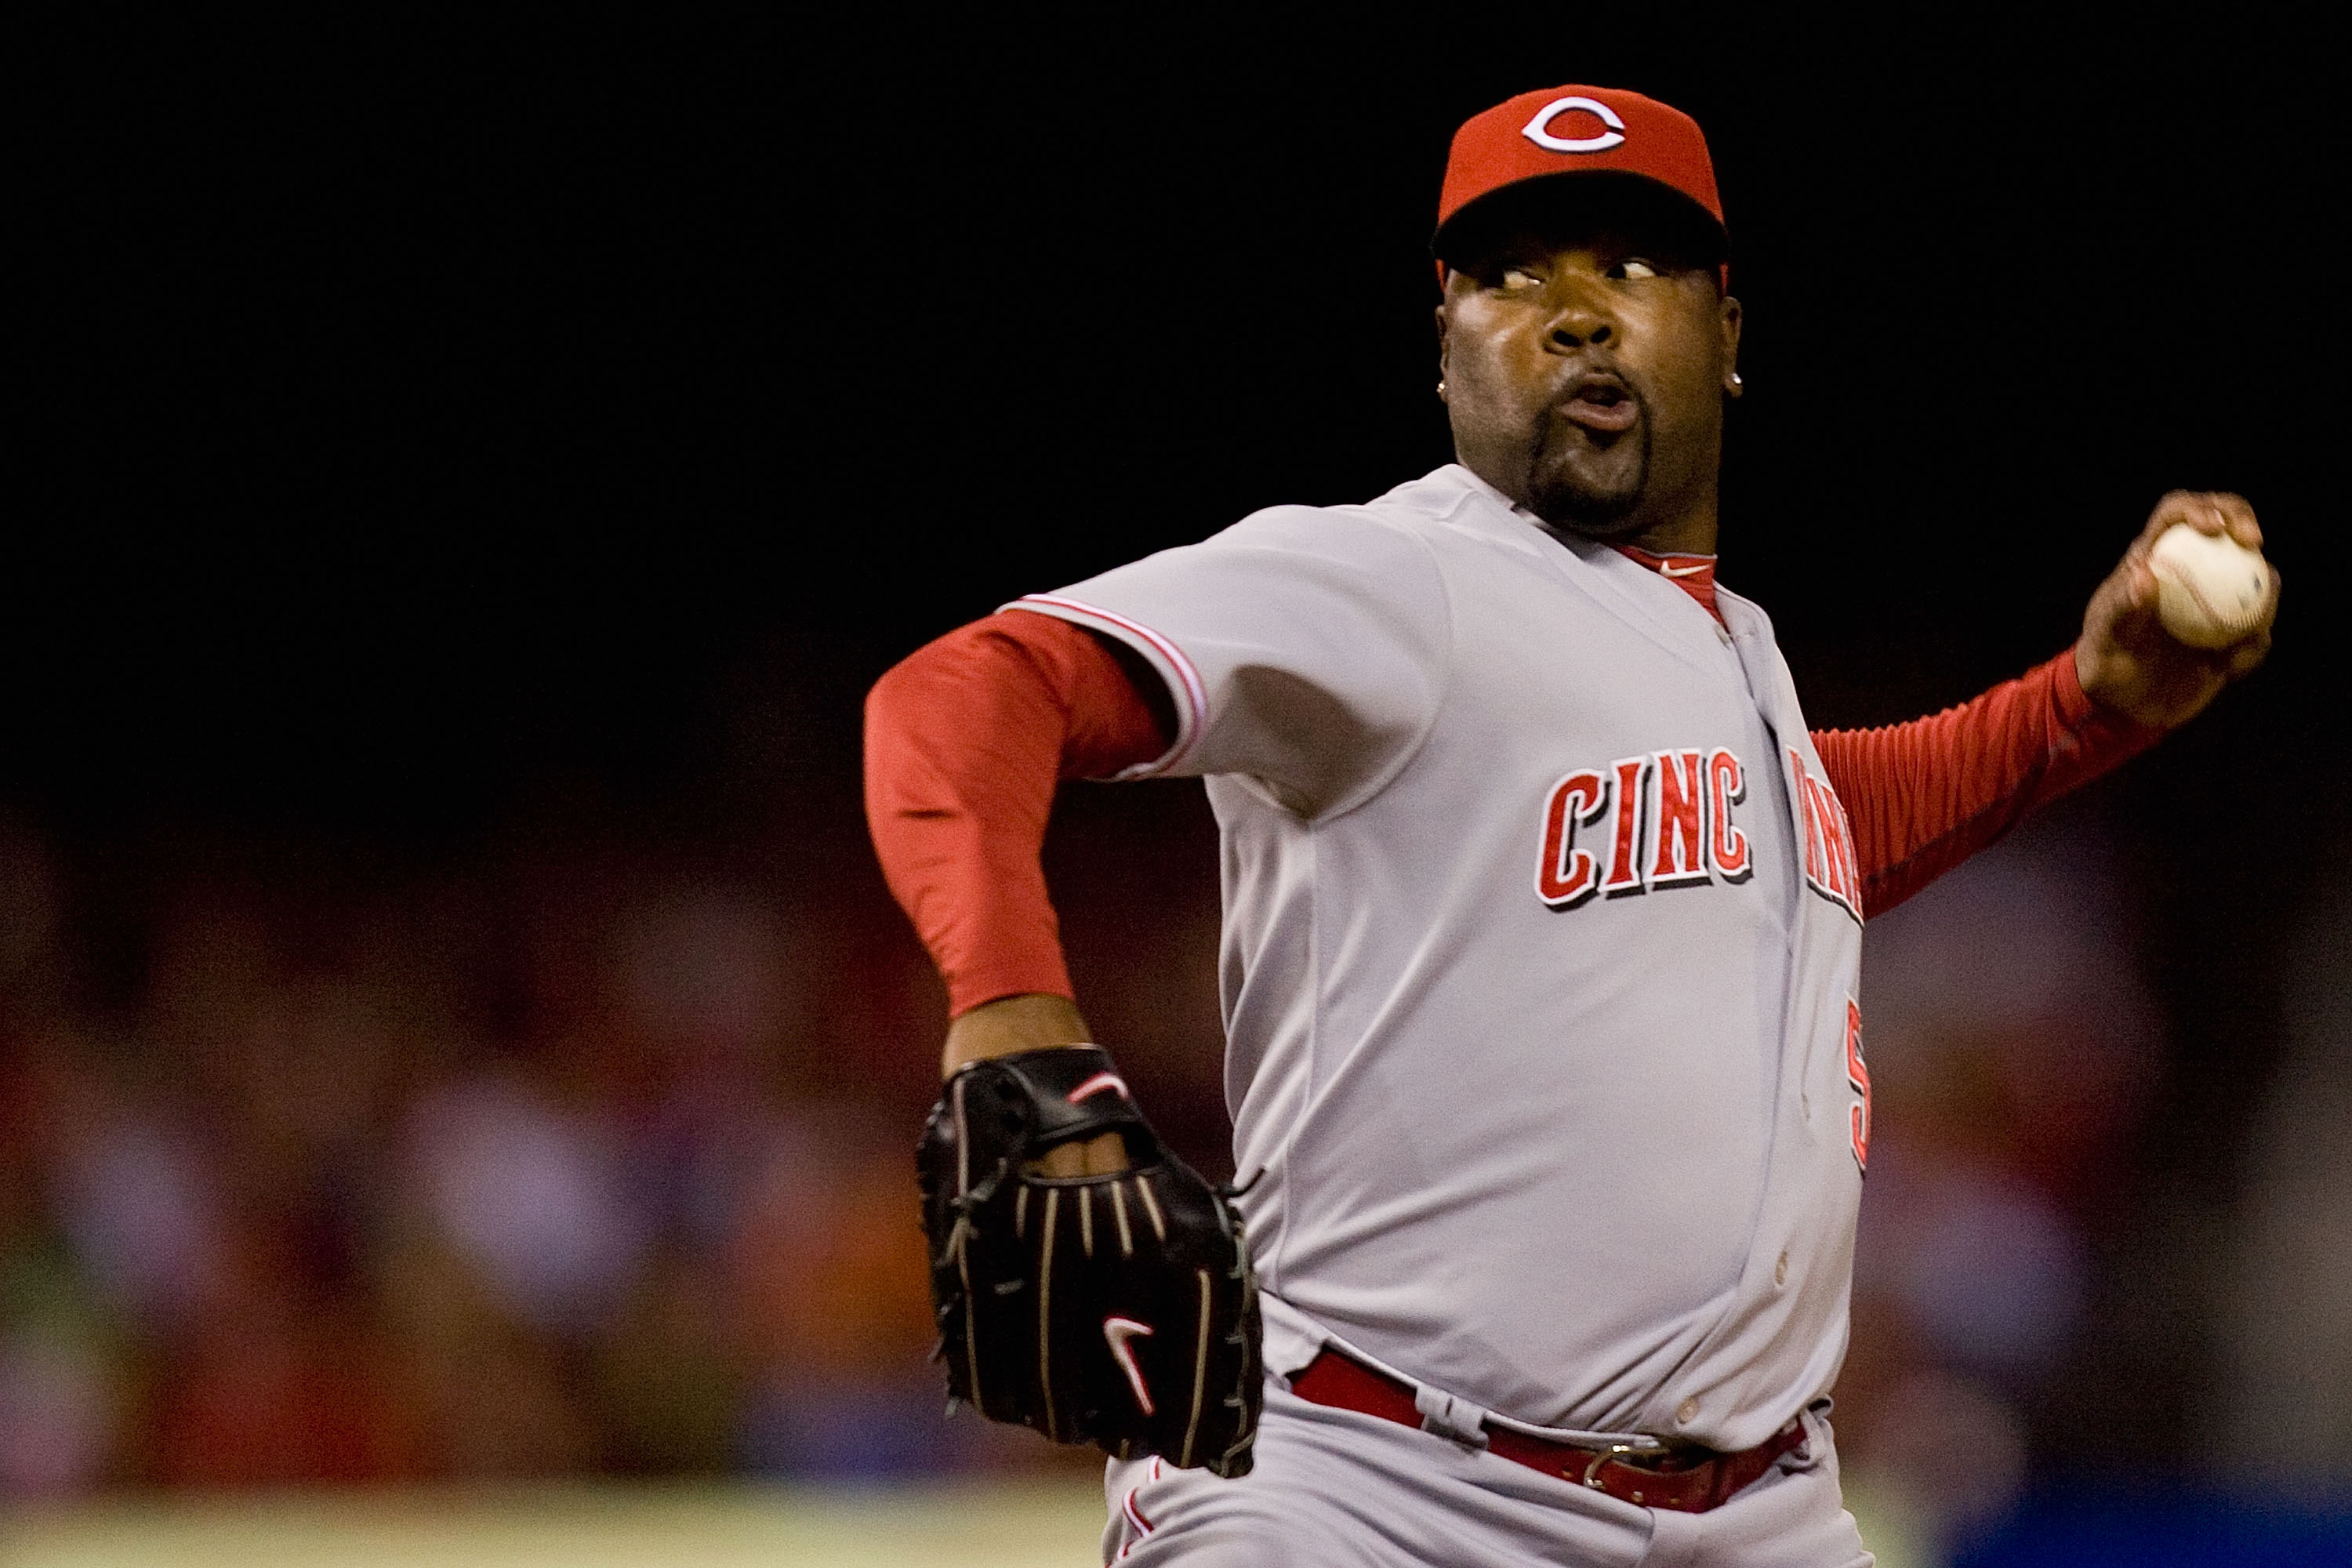 ST. LOUIS - SEPTEMBER 3: Reliever Arthur Rhodes #56 of the Cincinnati Reds pitches against the St. Louis Cardinals at Busch Stadium on September 3, 2010 in St. Louis, Missouri.  The Cardinals beat the Reds 3-2.  (Photo by Dilip Vishwanat/Getty Images)